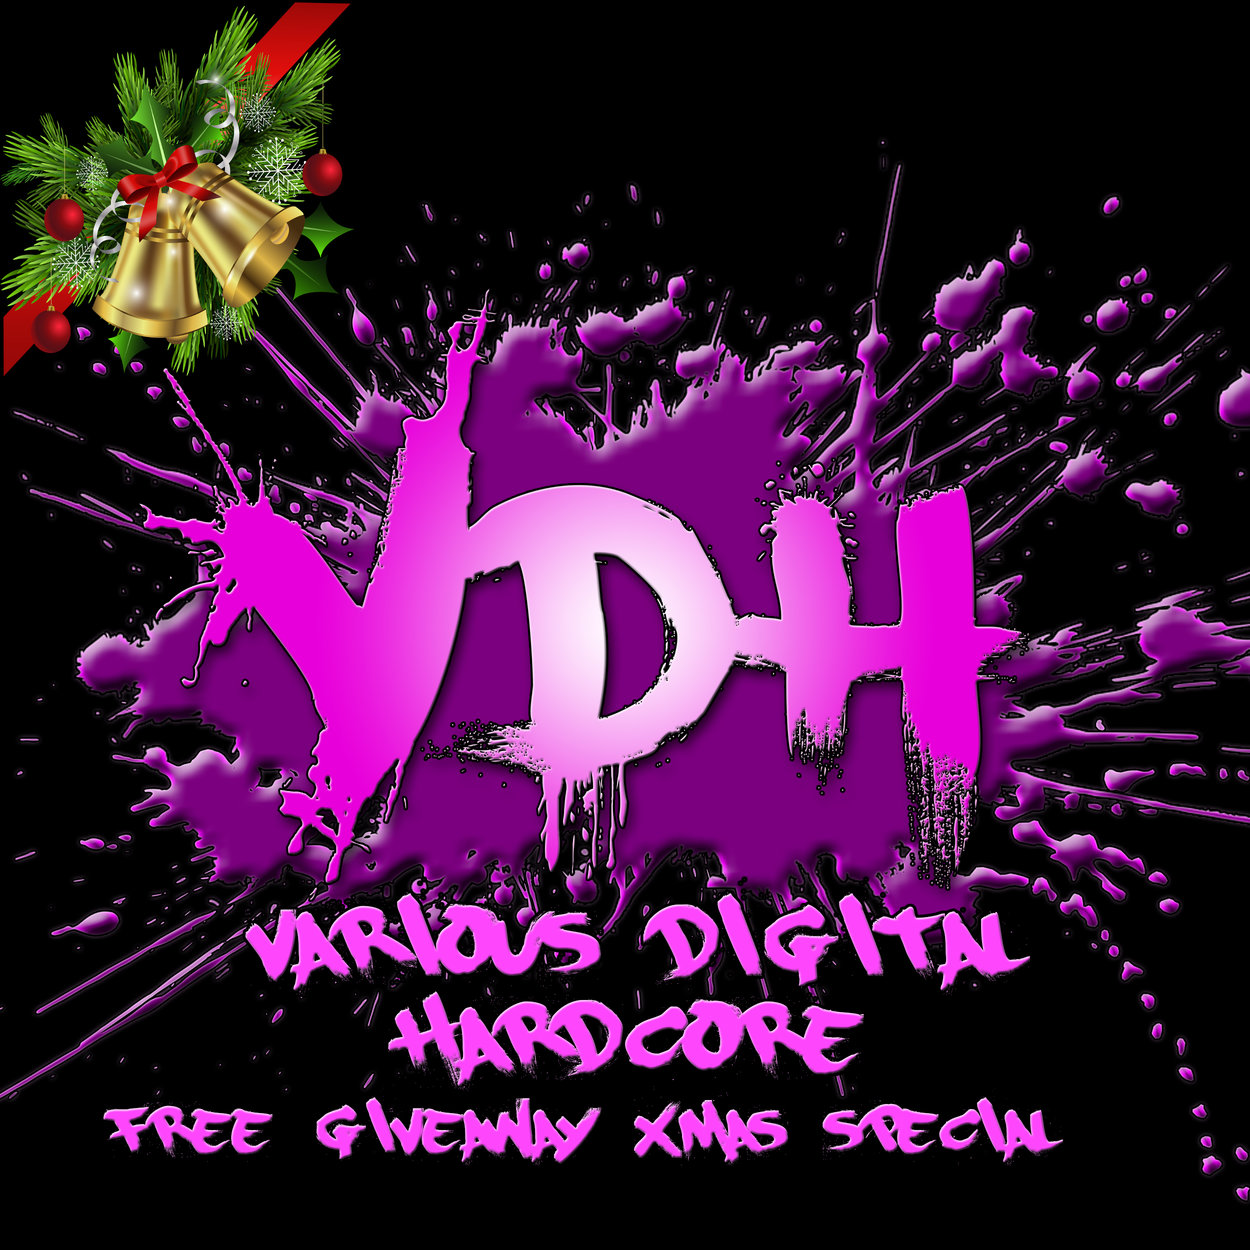 Various DIgital hardcore free xmas give away 2019 -> hardcore / happy hardcore / uk hardcore